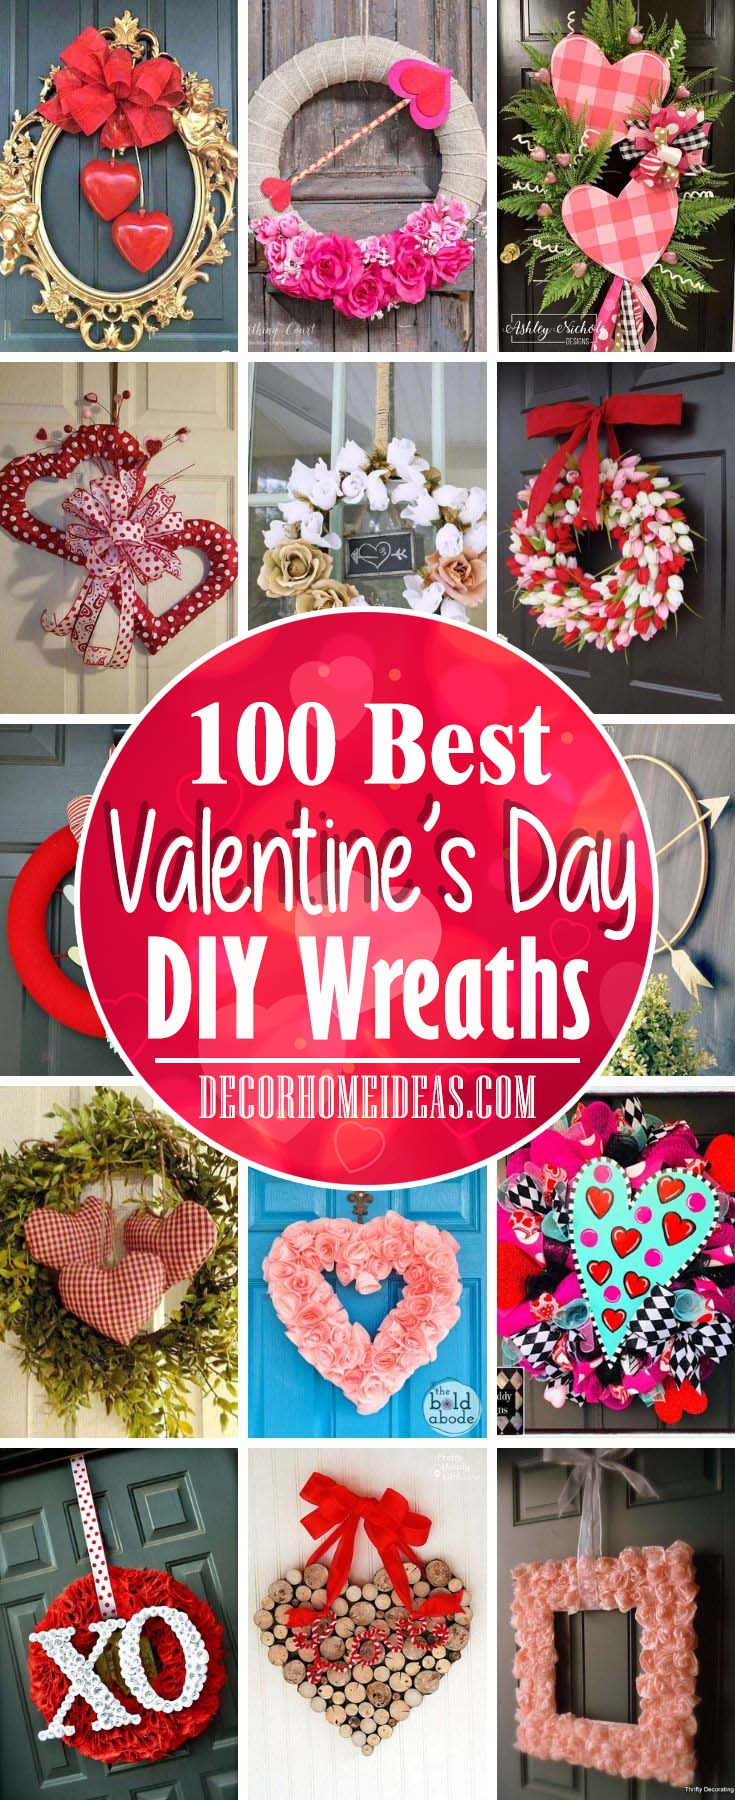 Best Diy Valentines Day Wreaths #valentine #diy #wreath #decorhomeideas